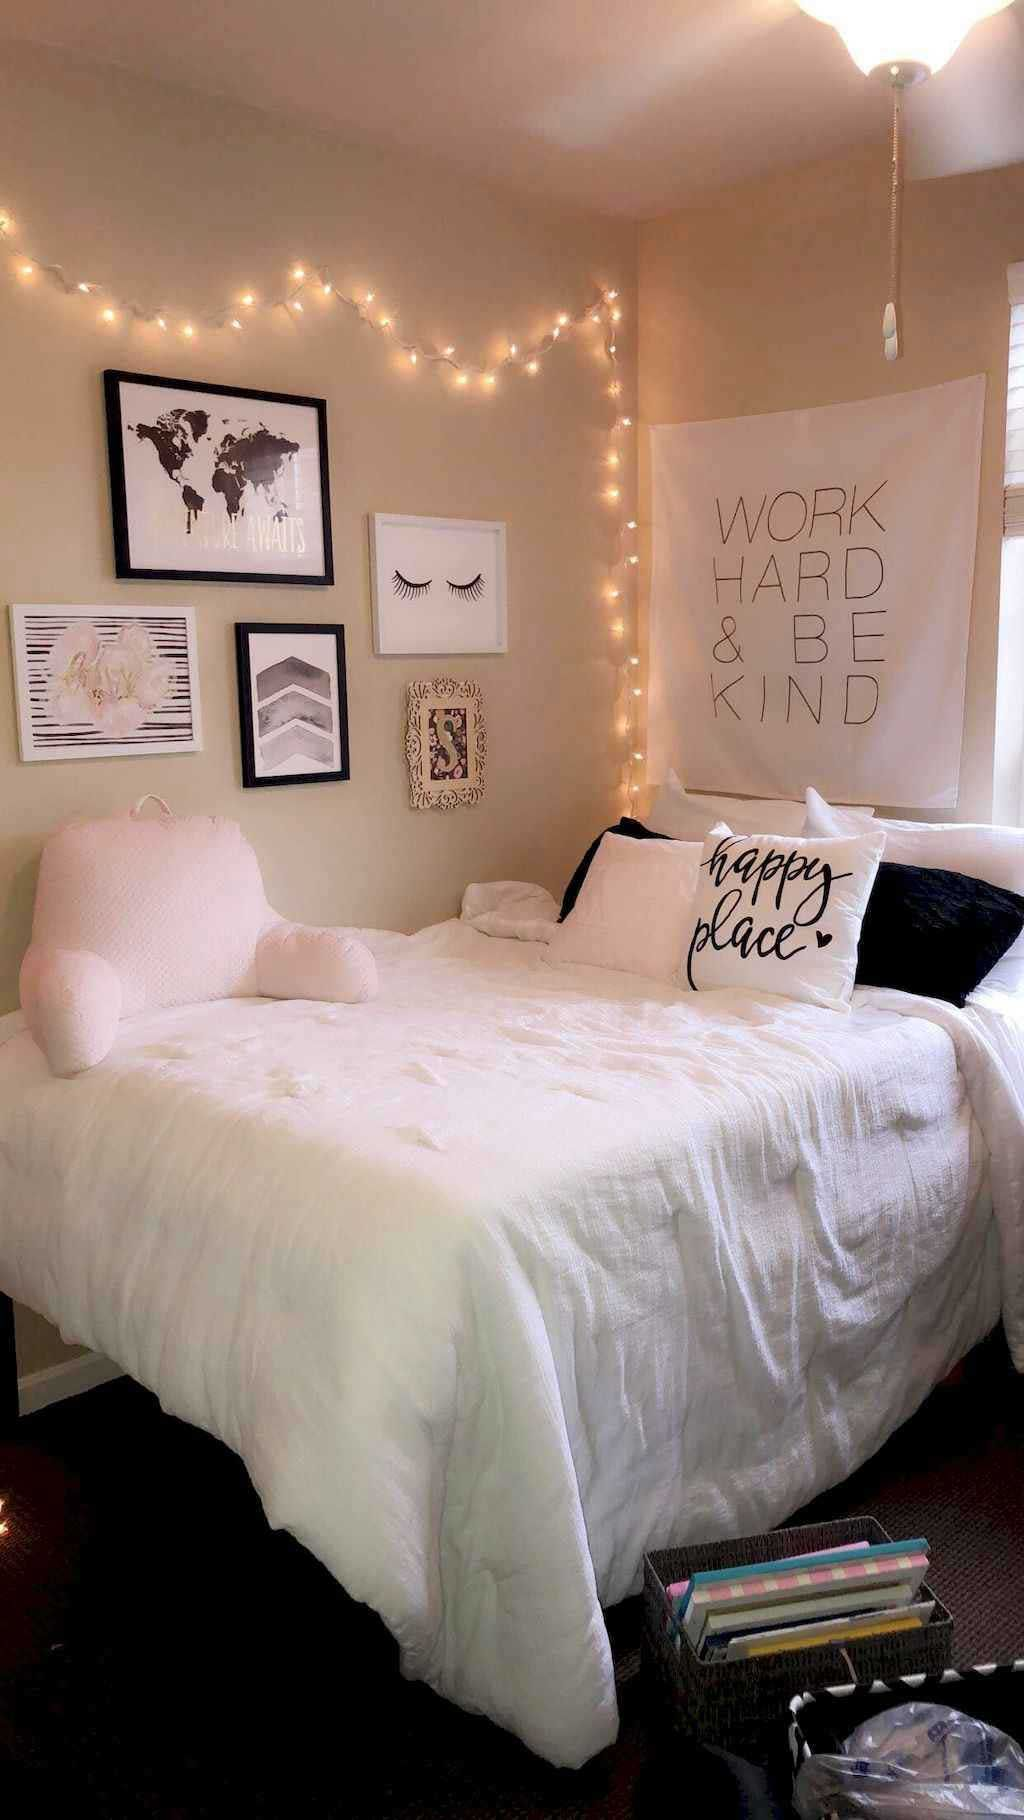 College Apartment Decorating Ideas on A Budget in 12  College